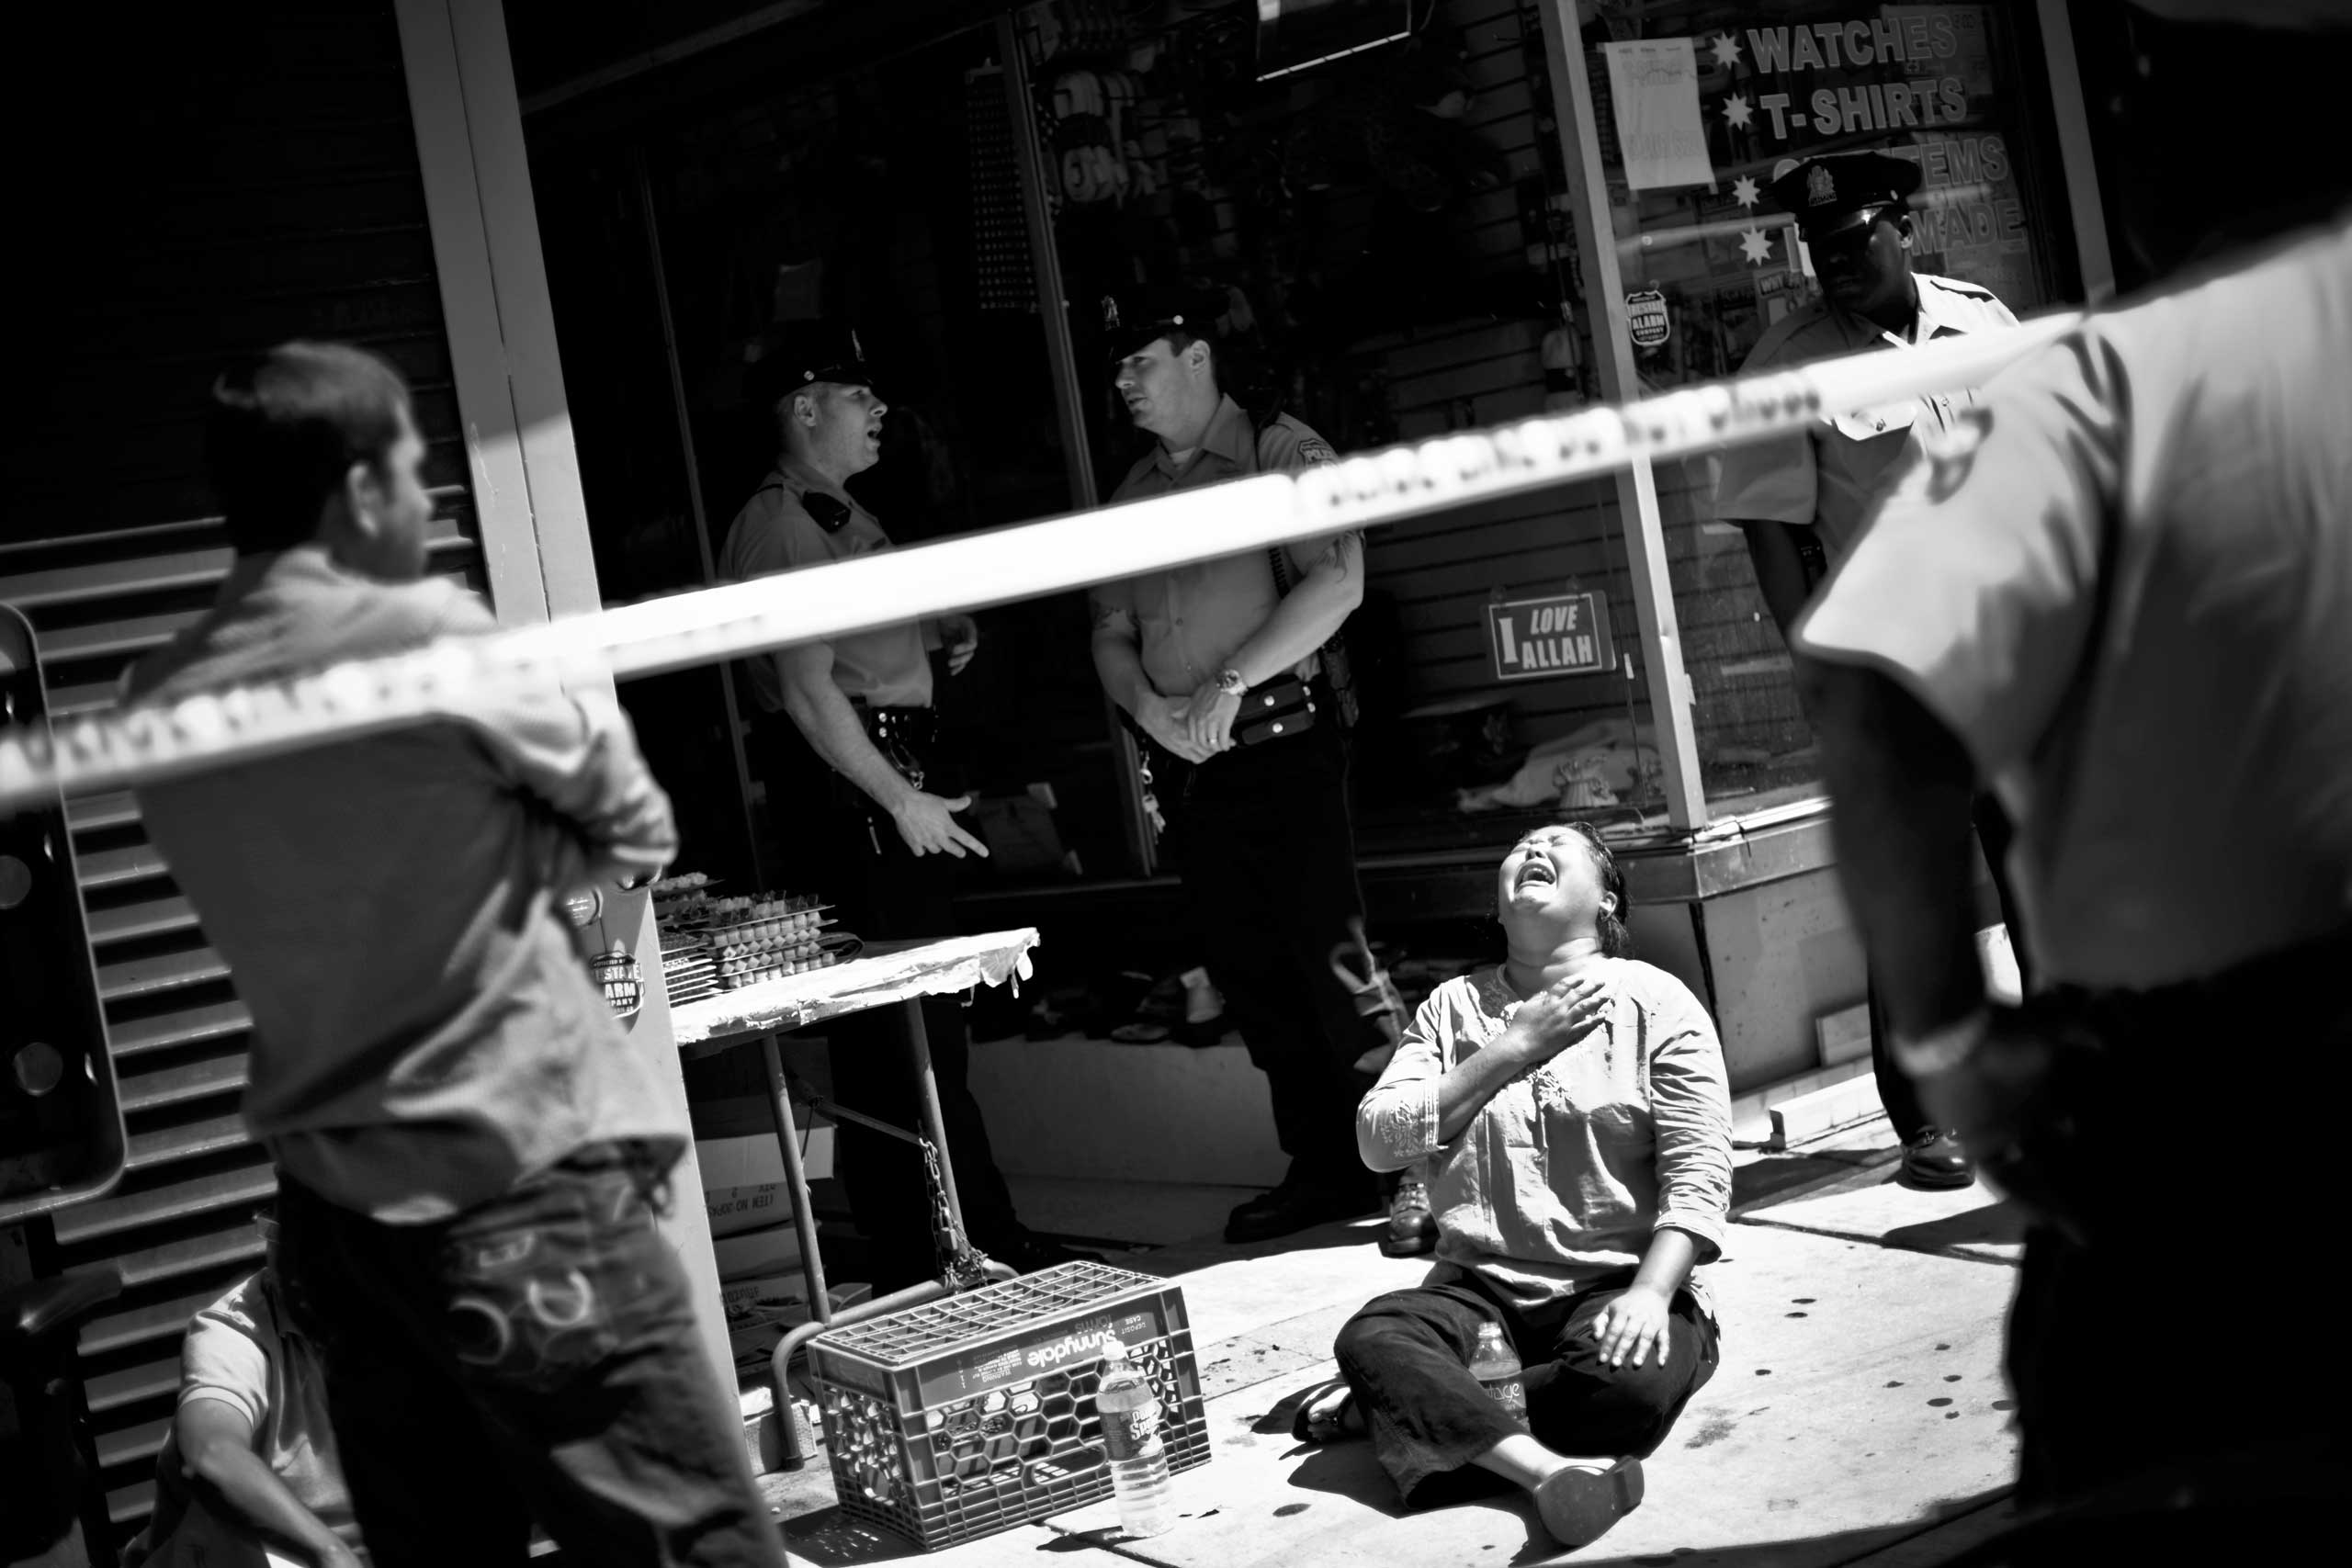 The mother of Fakhur Uddin, a 20-year old college student who was bound with duct tape and shot in the back of the head inside his family's Philadelphia store, collapses to the ground and weeps as police investigate the scene. Germantown, Philadelphia, 2008.